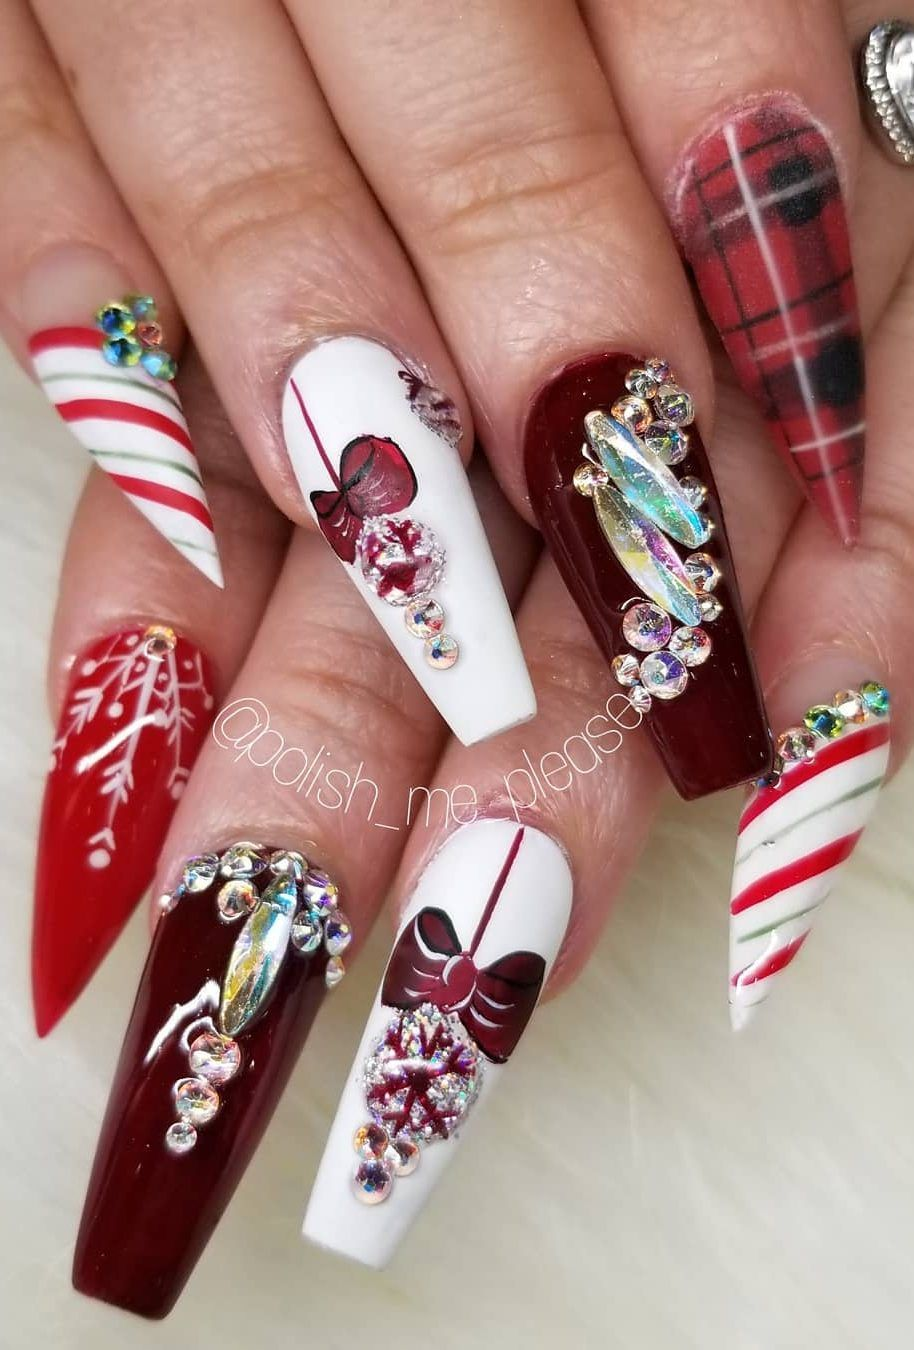 Amazing Christmas Nails Designs For New Year Party For 2019 Page 29 Of 53 Ladiesways Com Women Hairstyles Blog Christmas Nails Nail Designs New Year S Nails